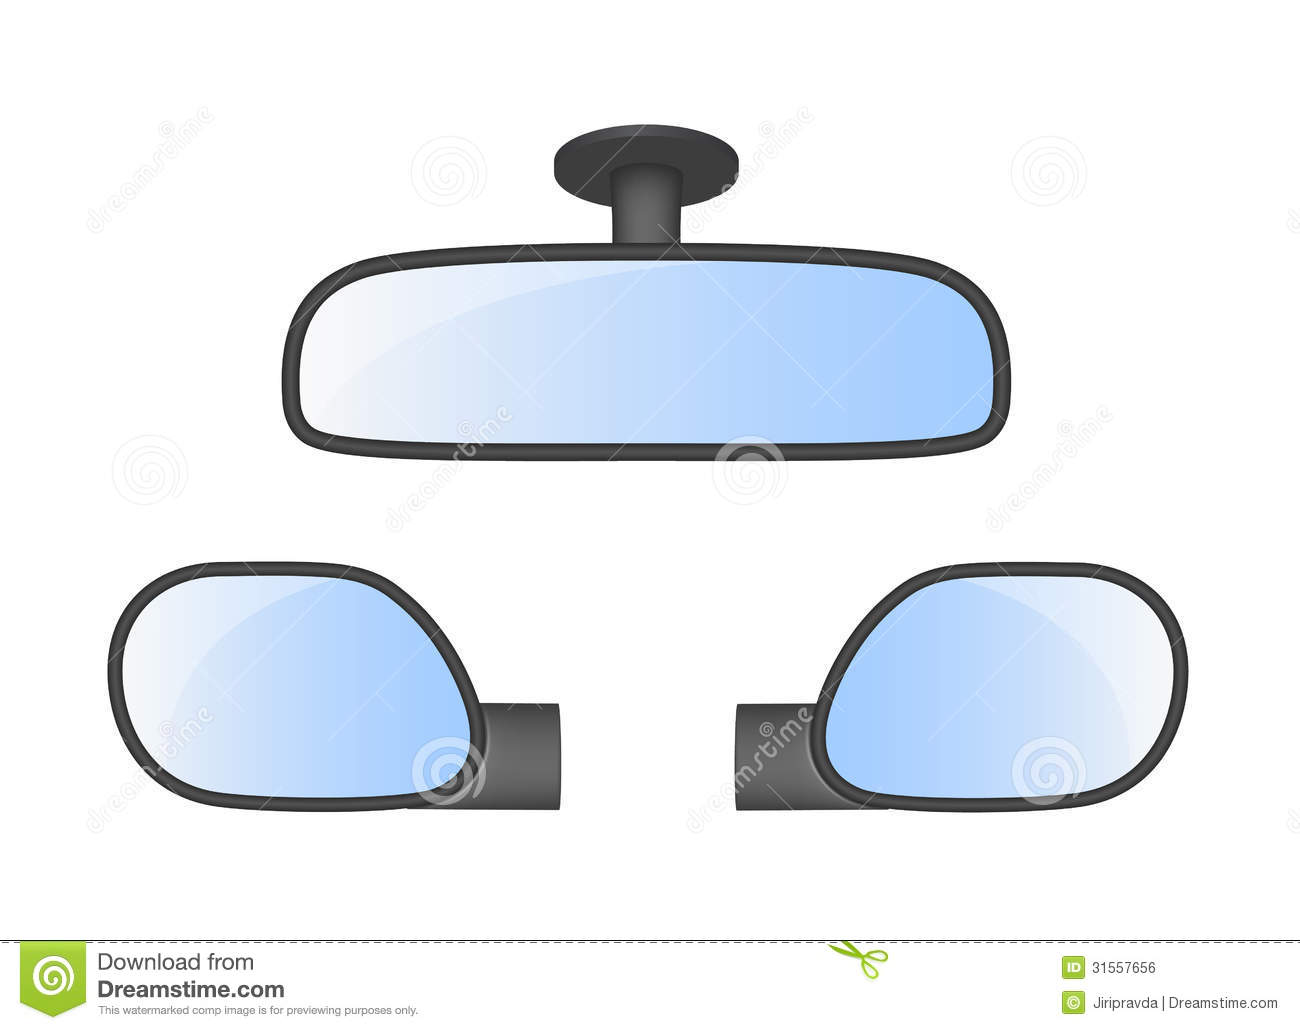 Car mirror clipart.